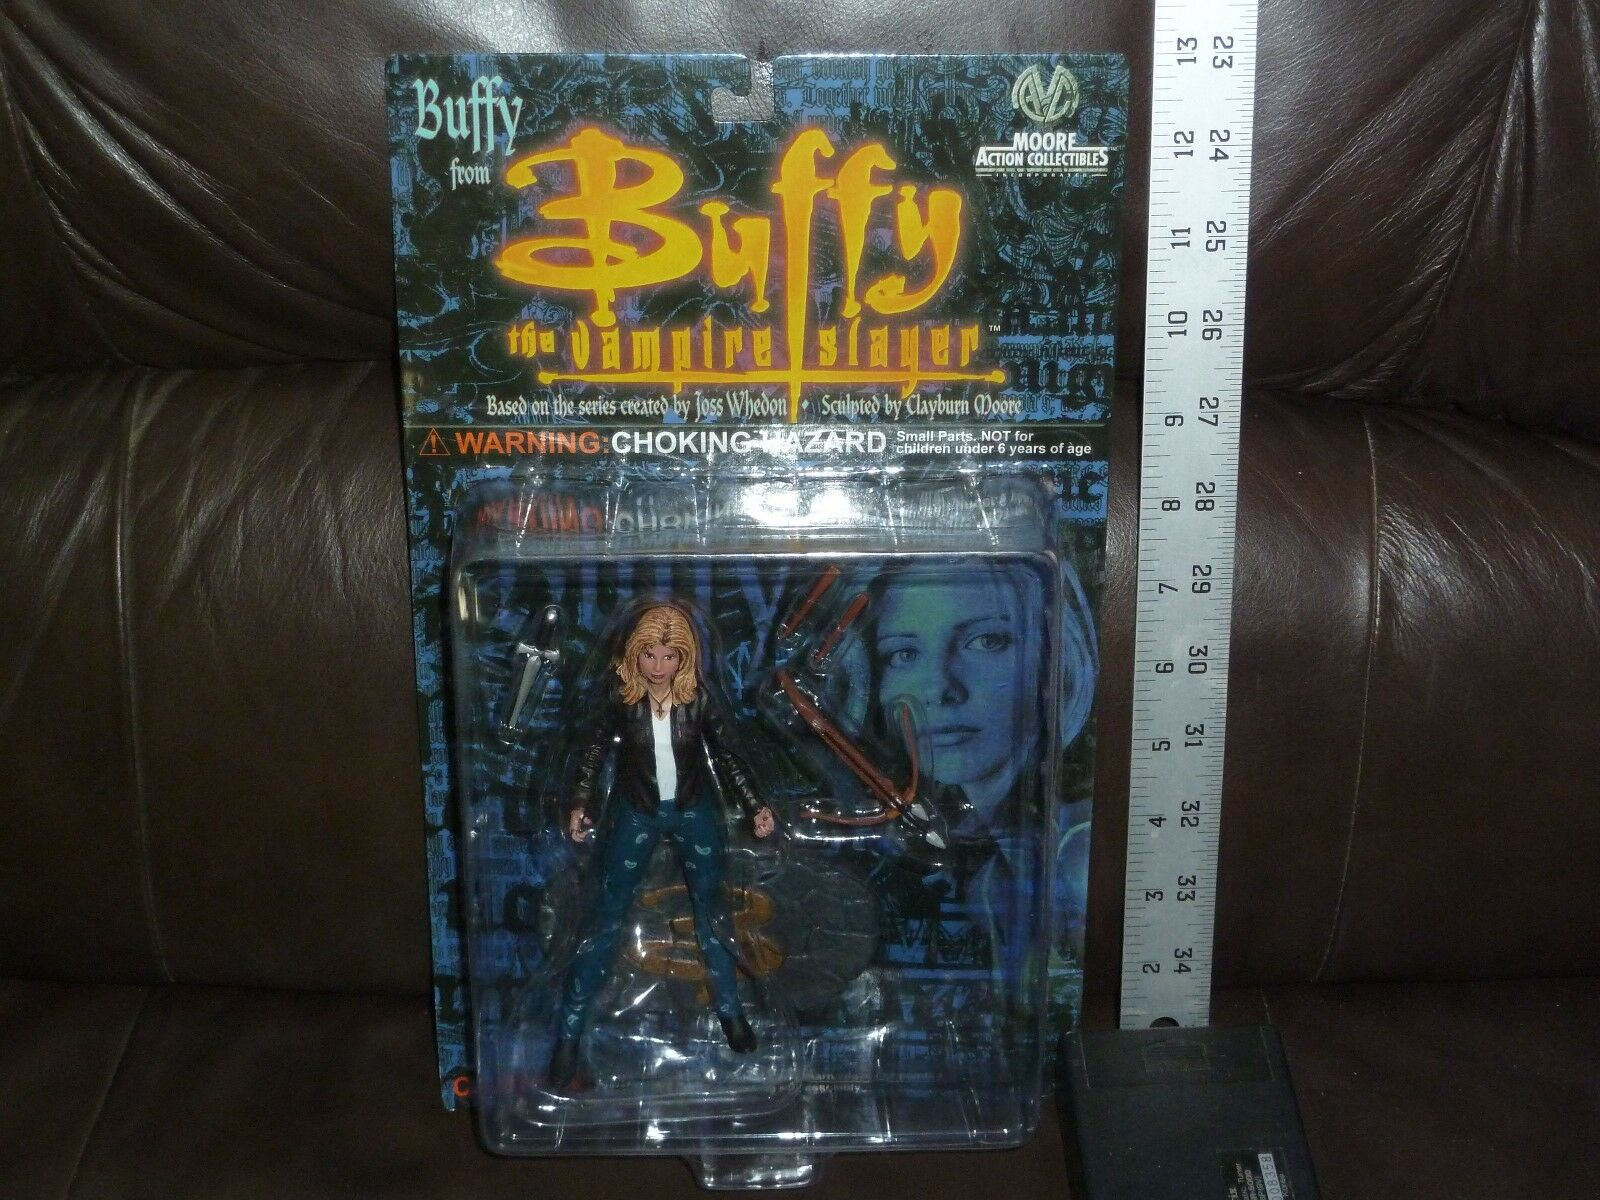 BUFFY THE VAMPIRE SLAYER MAC MOORE ACTION COLLECTIBLES